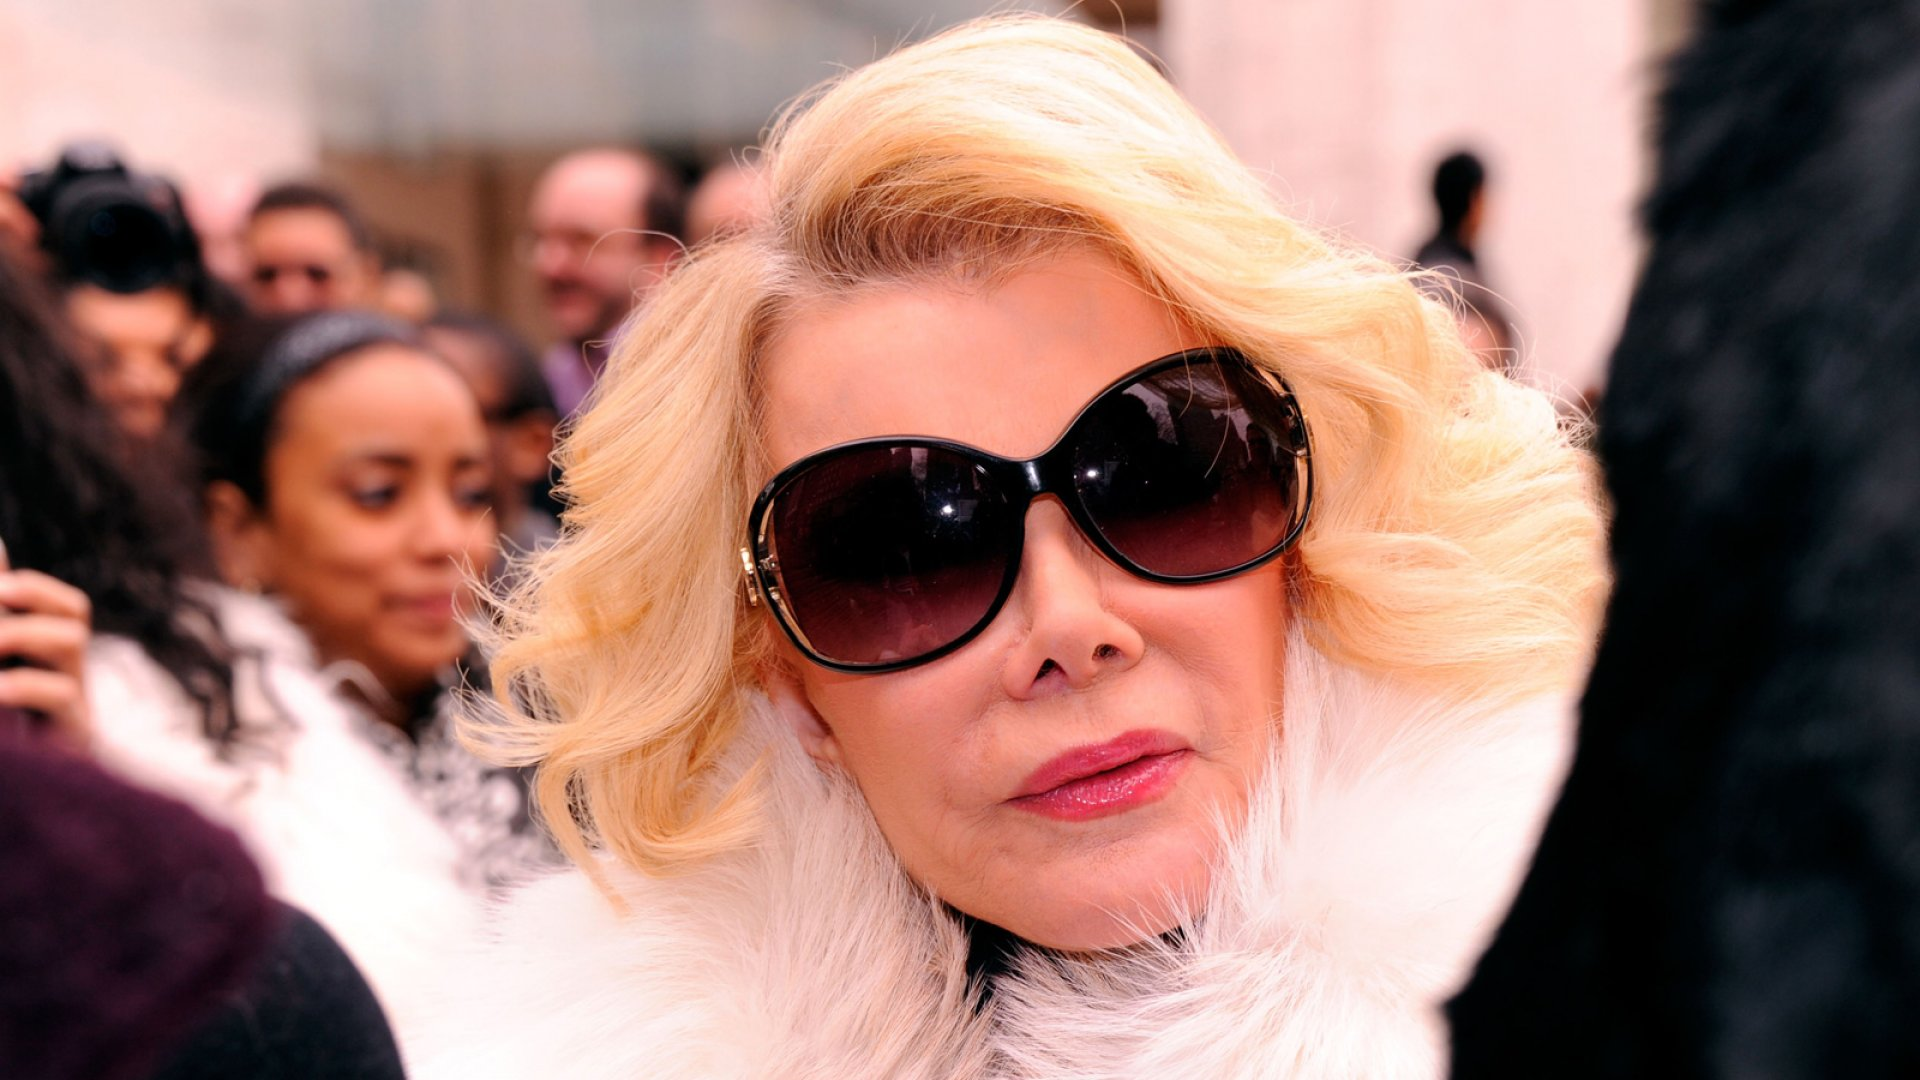 Joan Rivers is seen around Lincoln Center during Fall 2012 Mercedes-Benz Fashion Week.